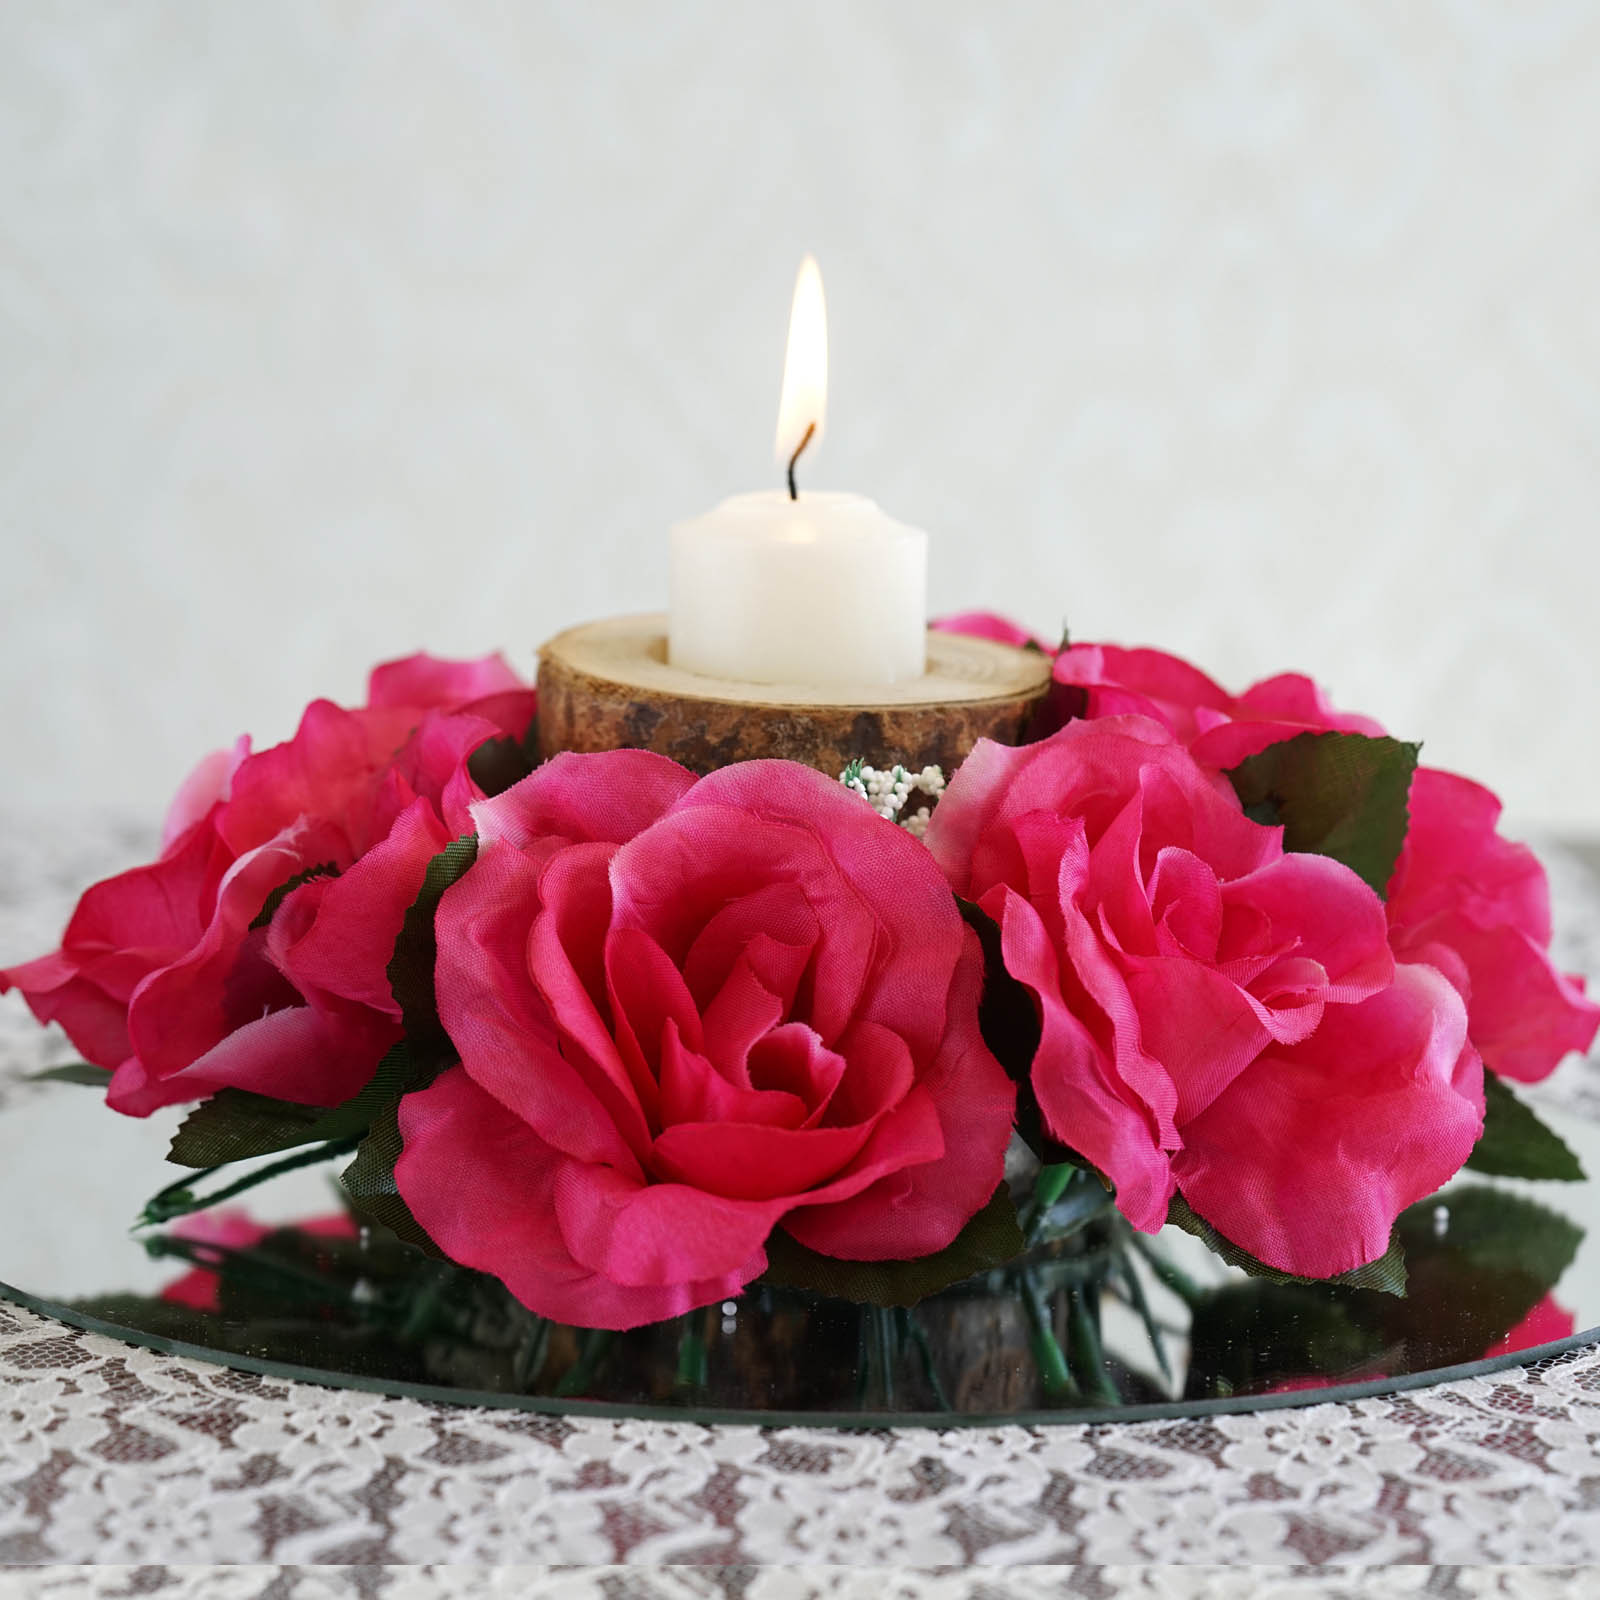 BalsaCircle 8 Silk Roses Flowers Candle Rings - DIY Home Wedding Party Artificial Bouquets Arrangements Centerpieces